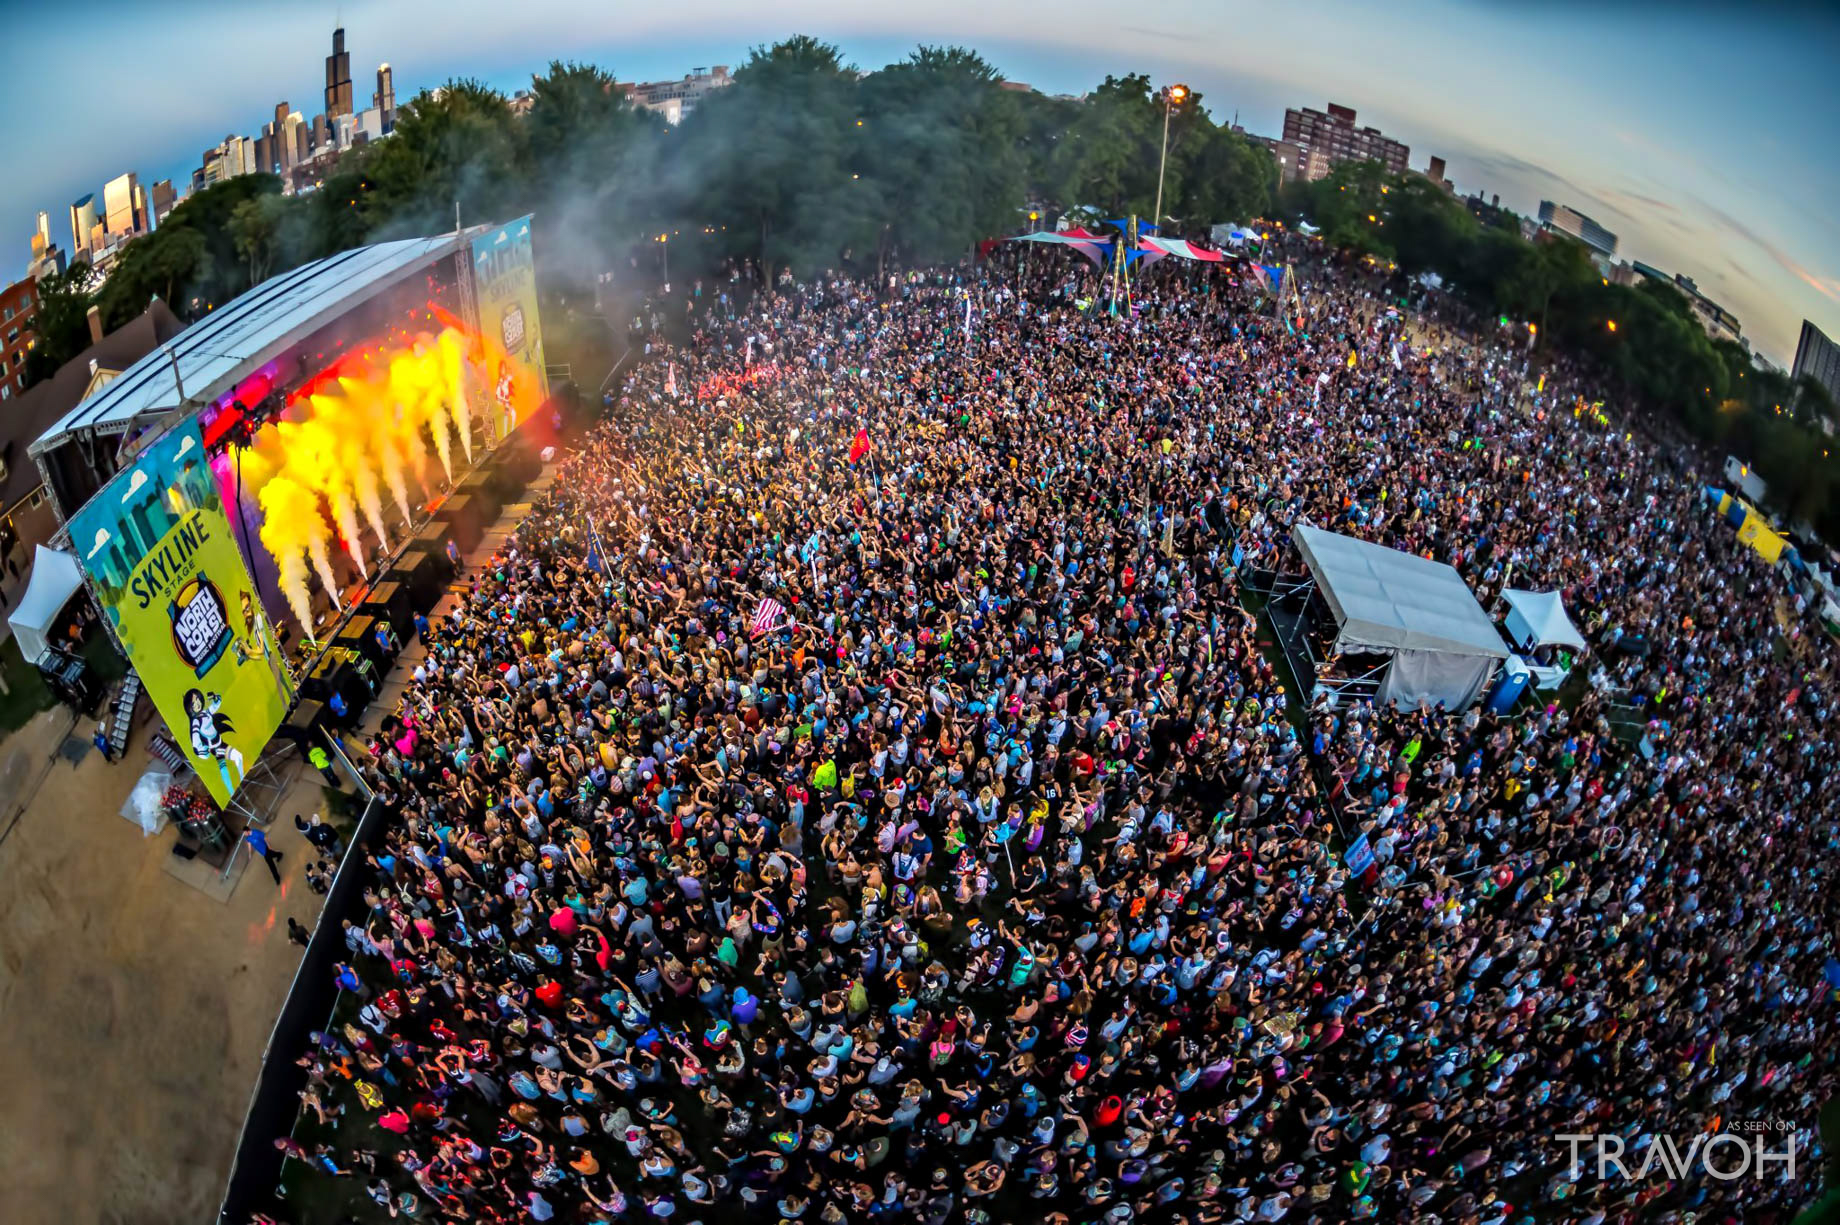 North Coast Music Festival - Chicago, IL, USA